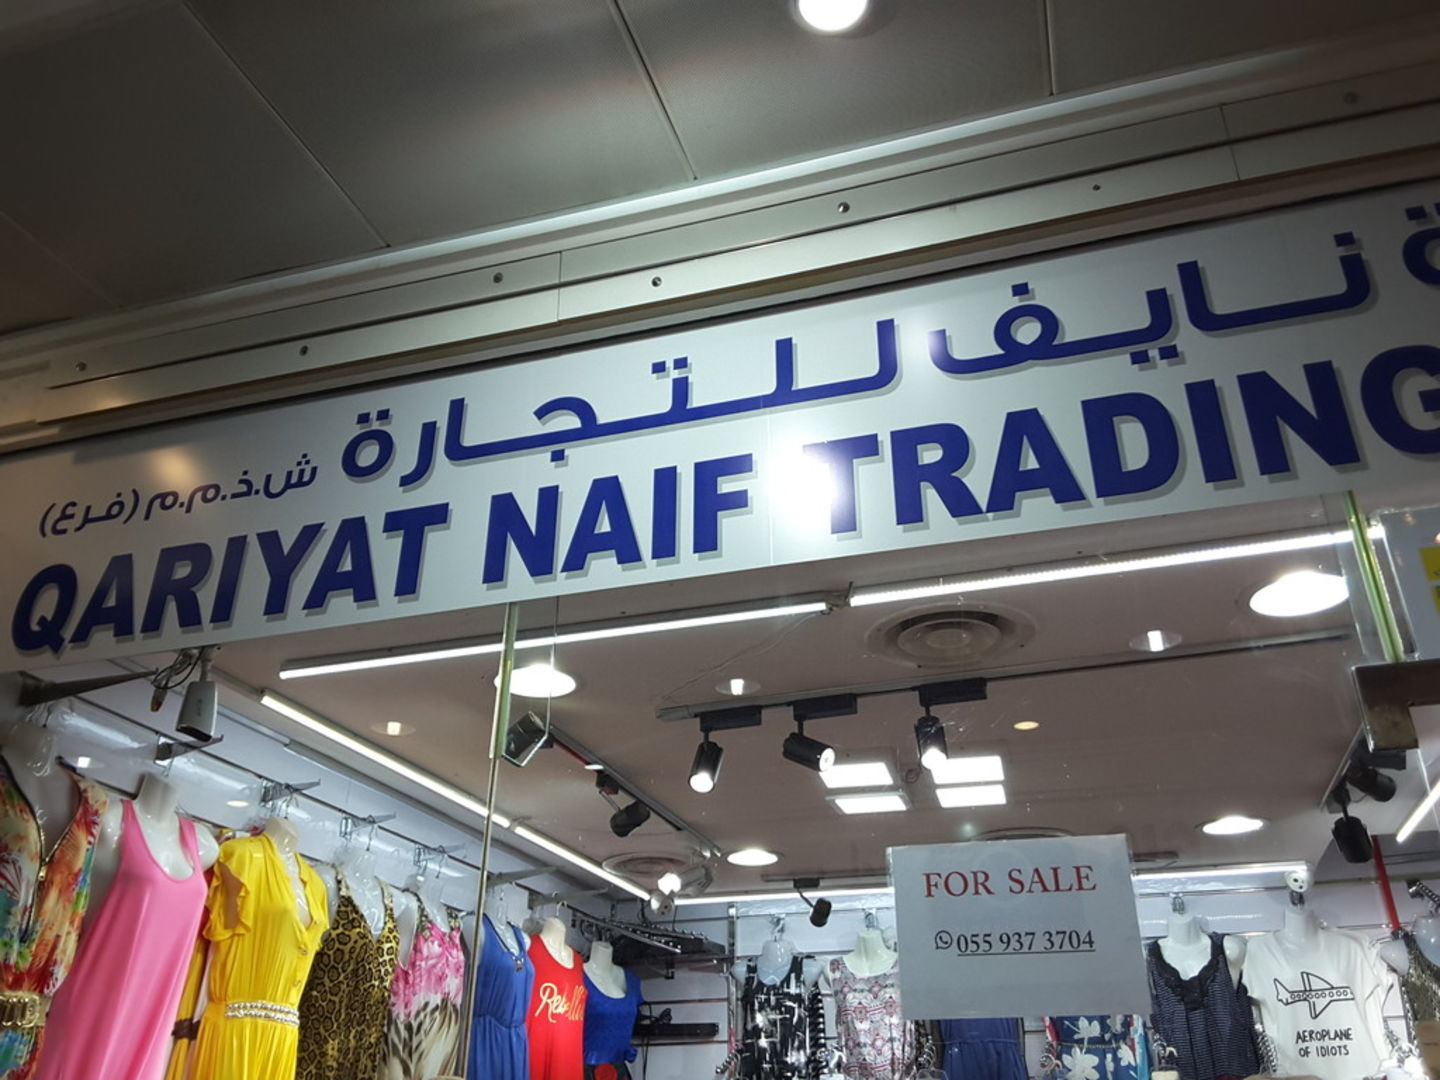 HiDubai-business-qariyat-naif-trading-shopping-apparel-naif-dubai